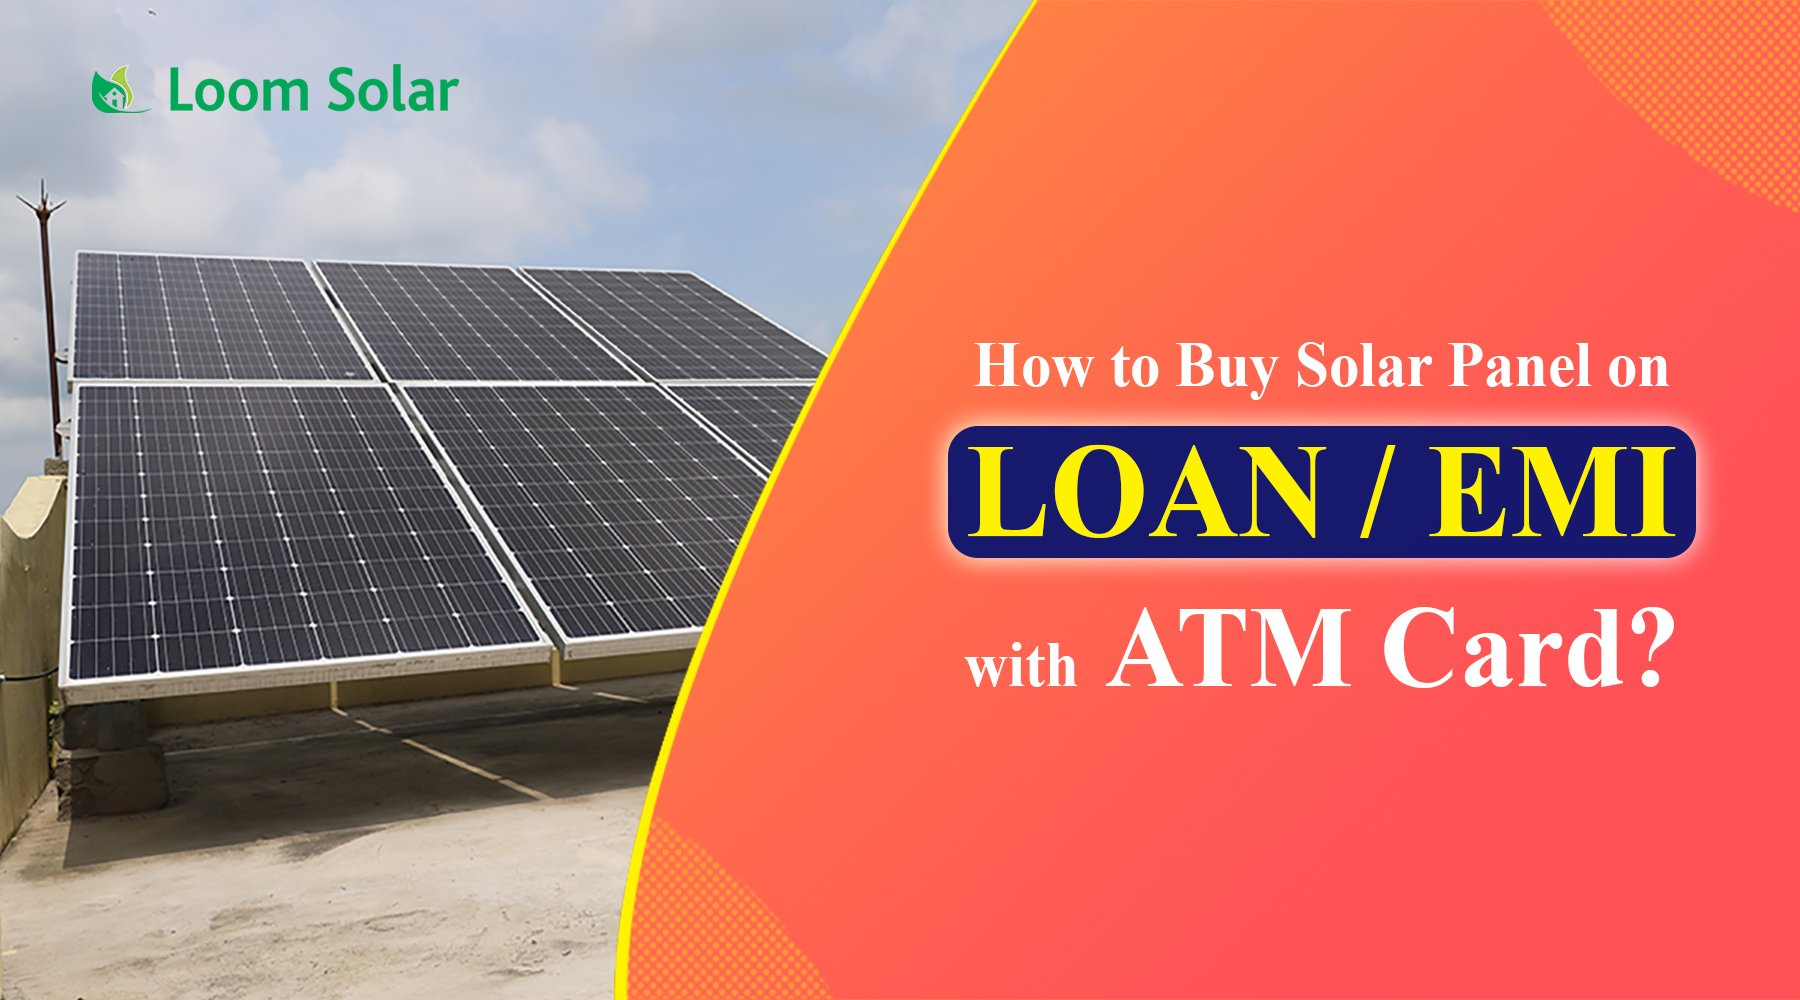 How to Buy Solar Panel on Loan?